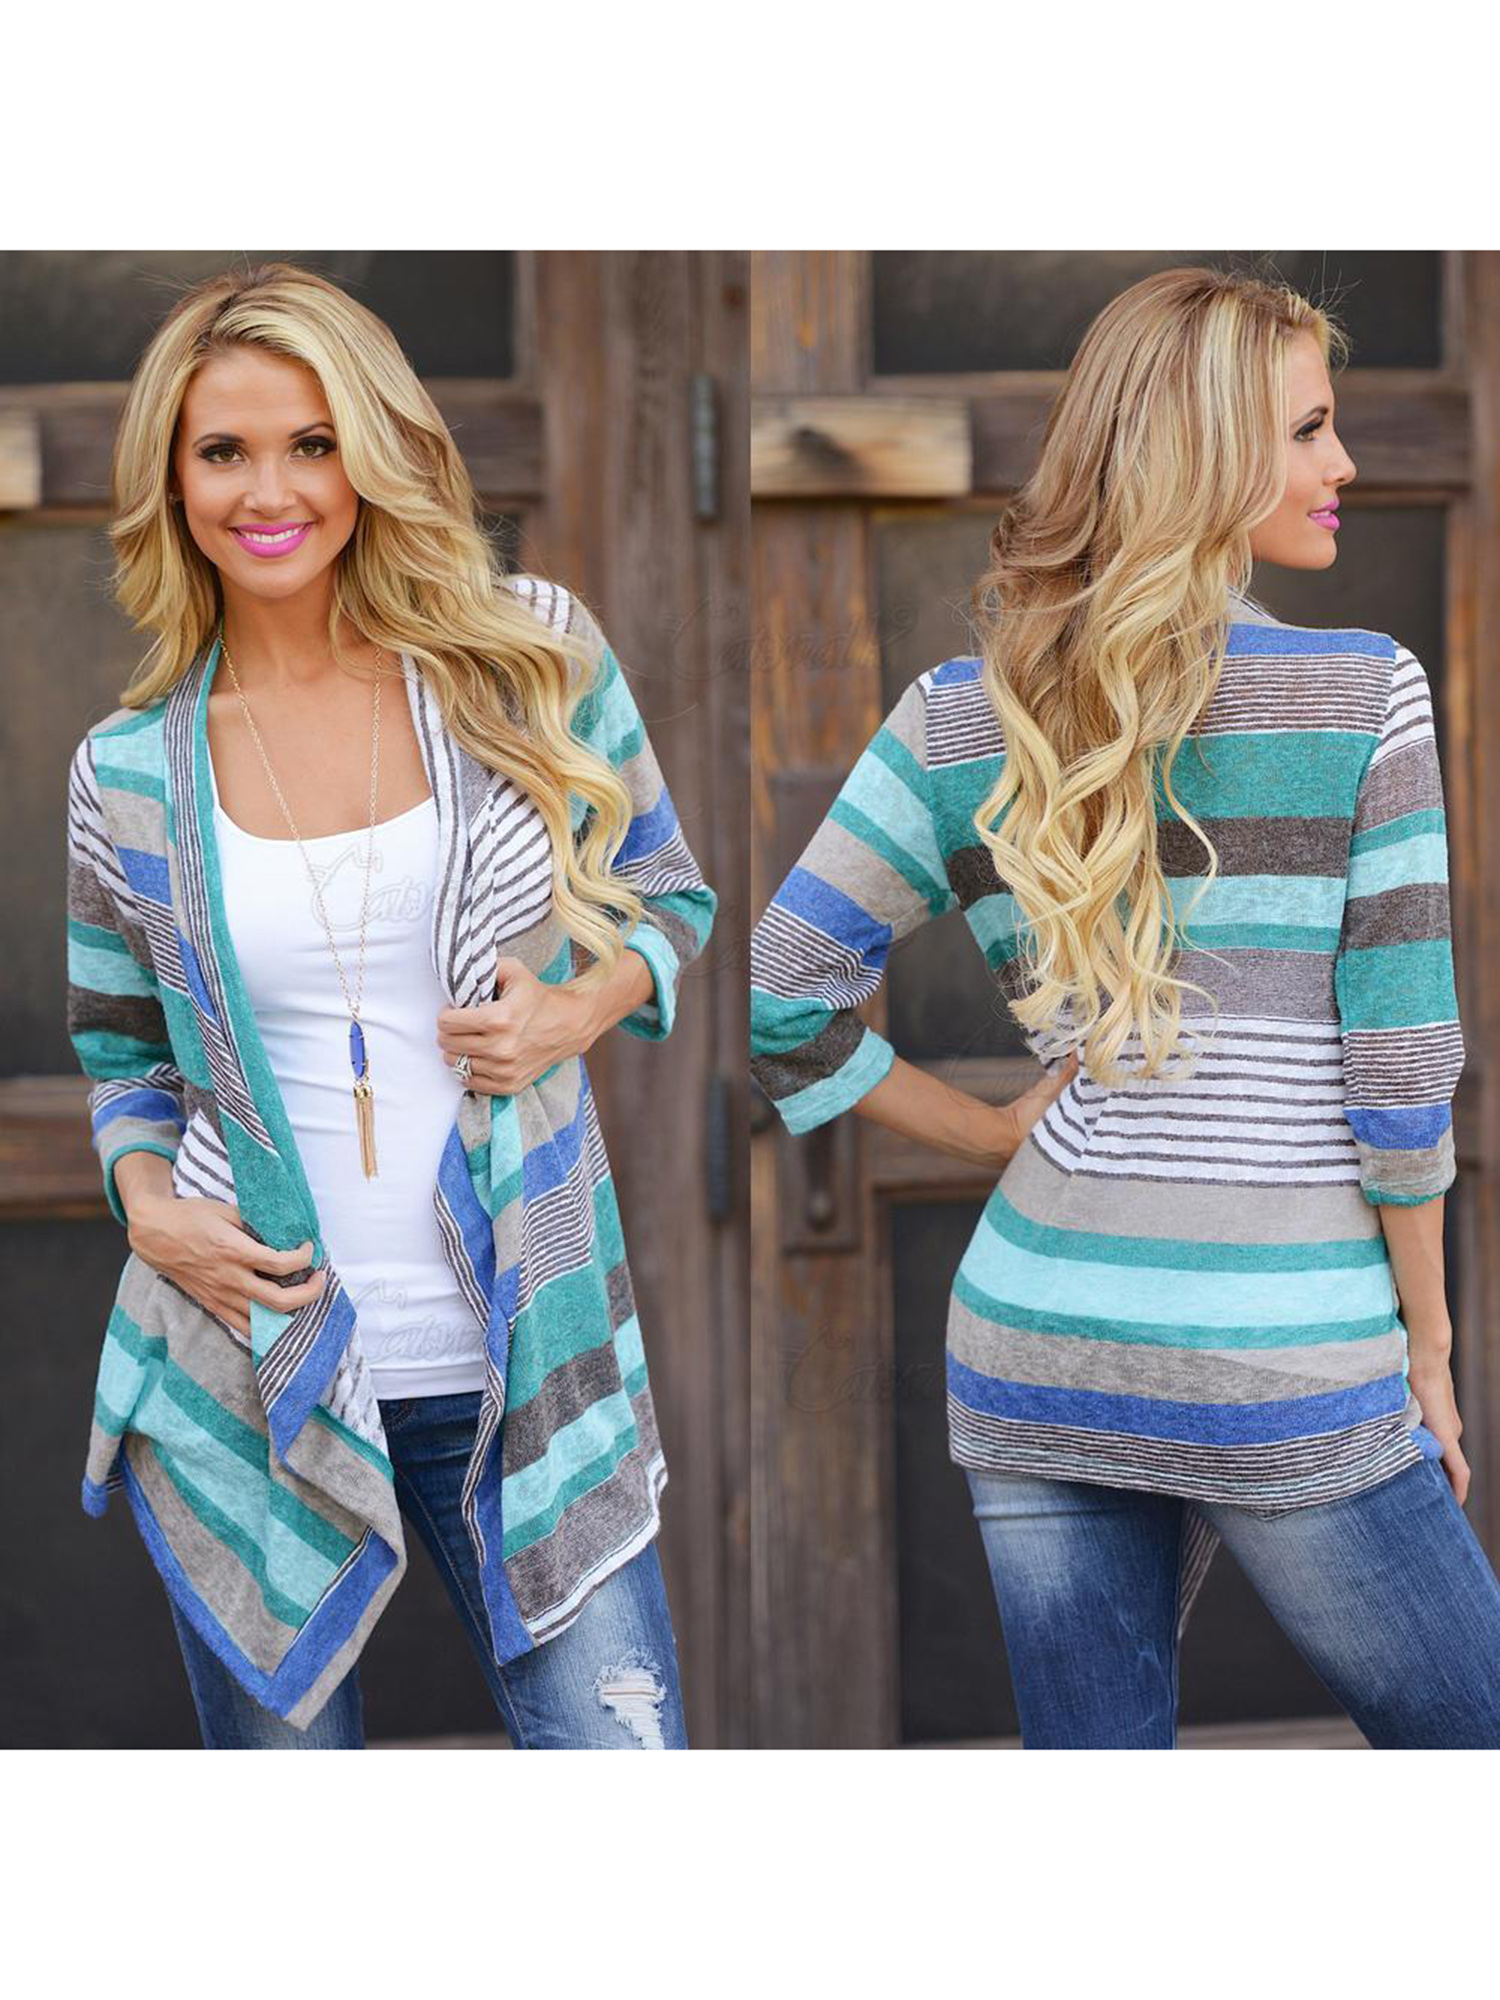 Black Friday Clearance! Blue Striped Printed Lightweight Kimono Cardigan for Women, Open Front Draped Kimono Loose Cardigan Sweater for Juniors, 3/4 Sleeve Knitted Cardigan Gift for Ladies,S-XL